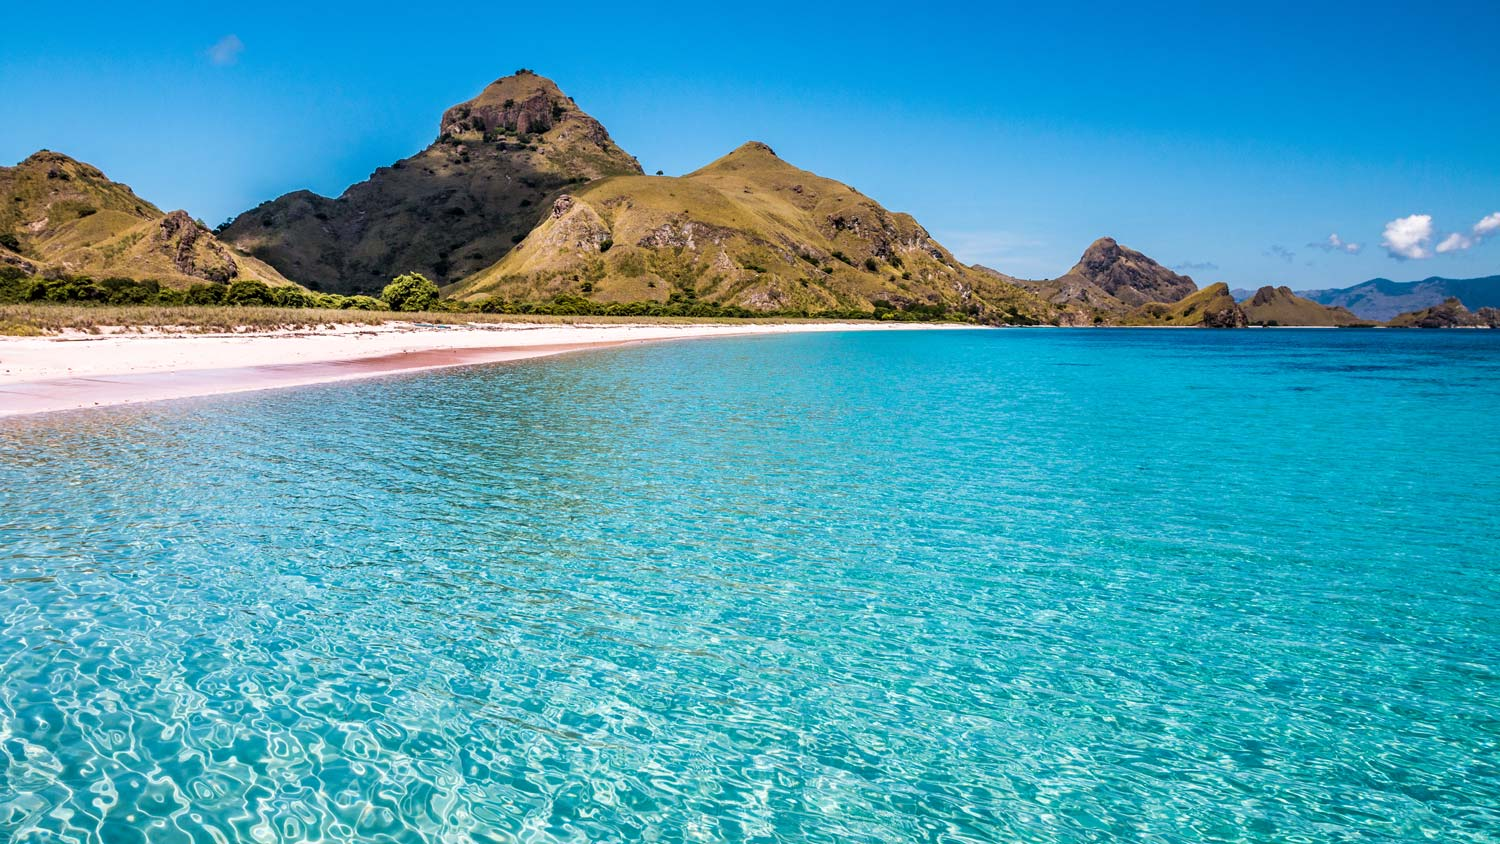 Pink-beach-komodo-national-park.jpg